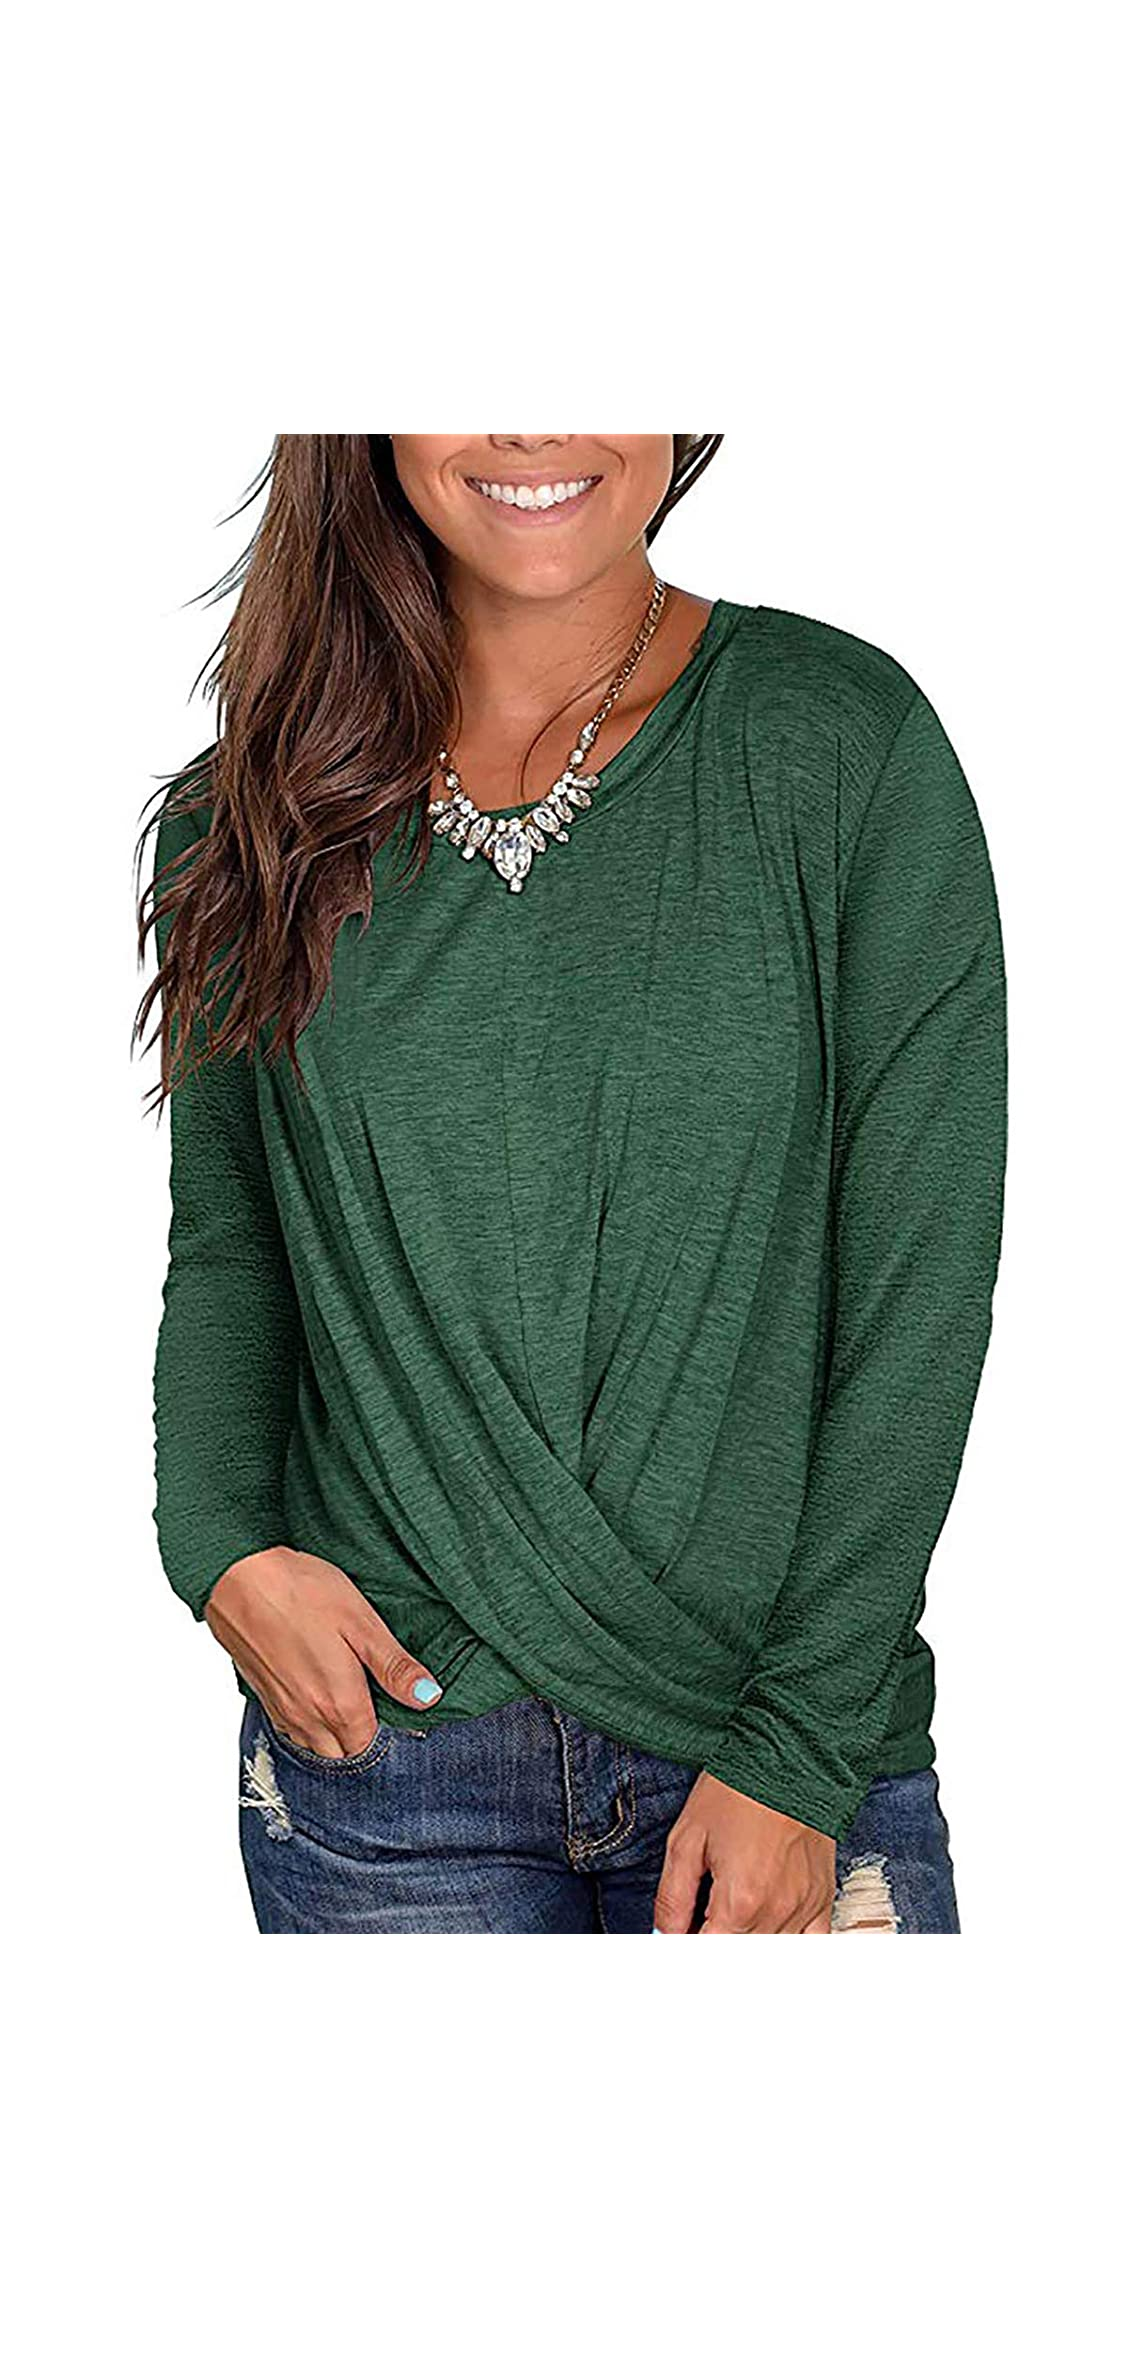 Women's Soft Tops Long Sleeve Round Neck T-shirts Front